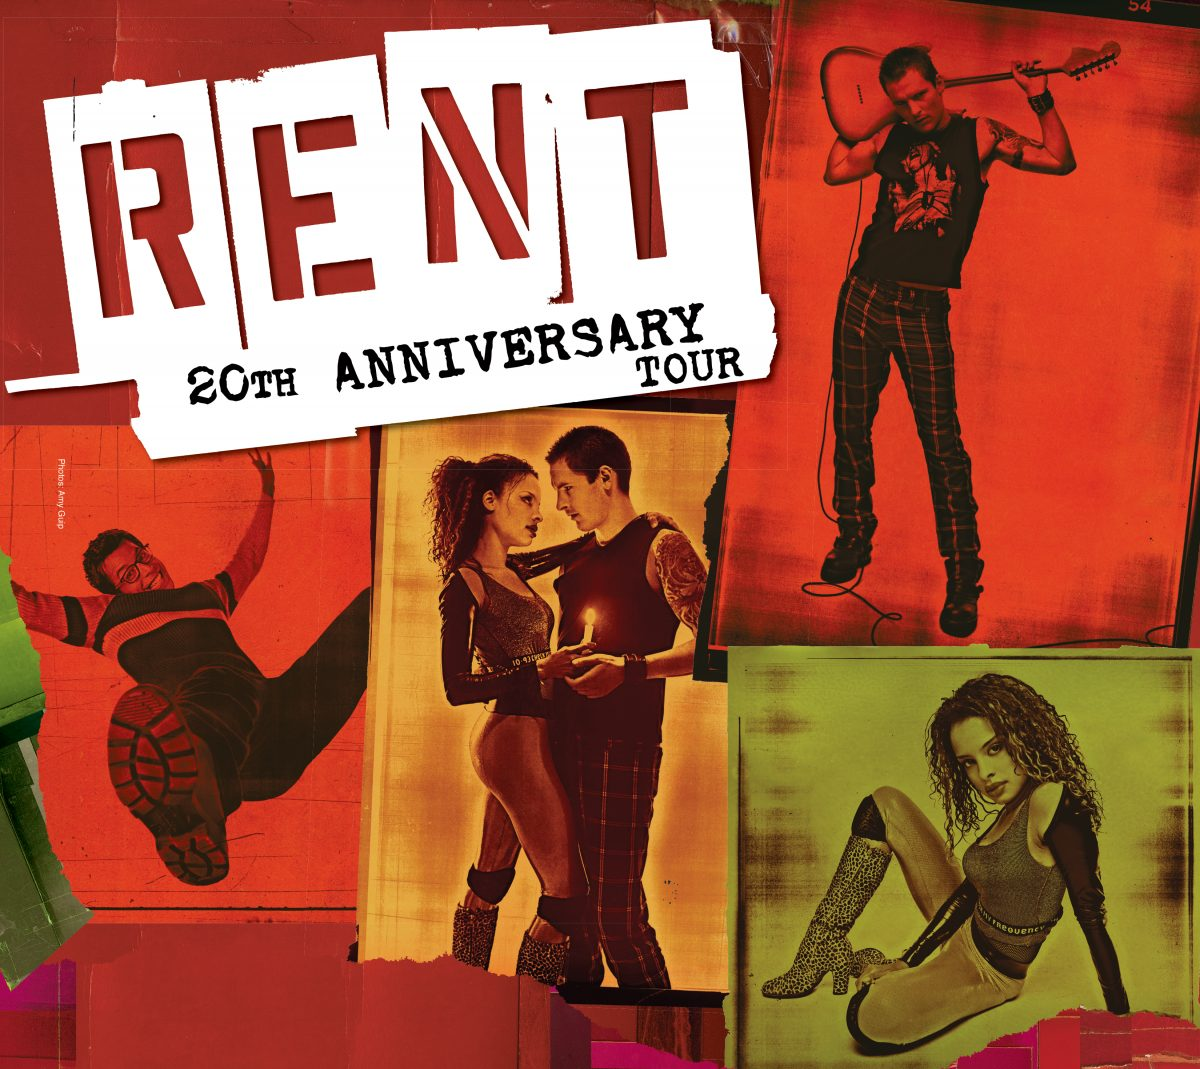 RENT's Legacy Lives On